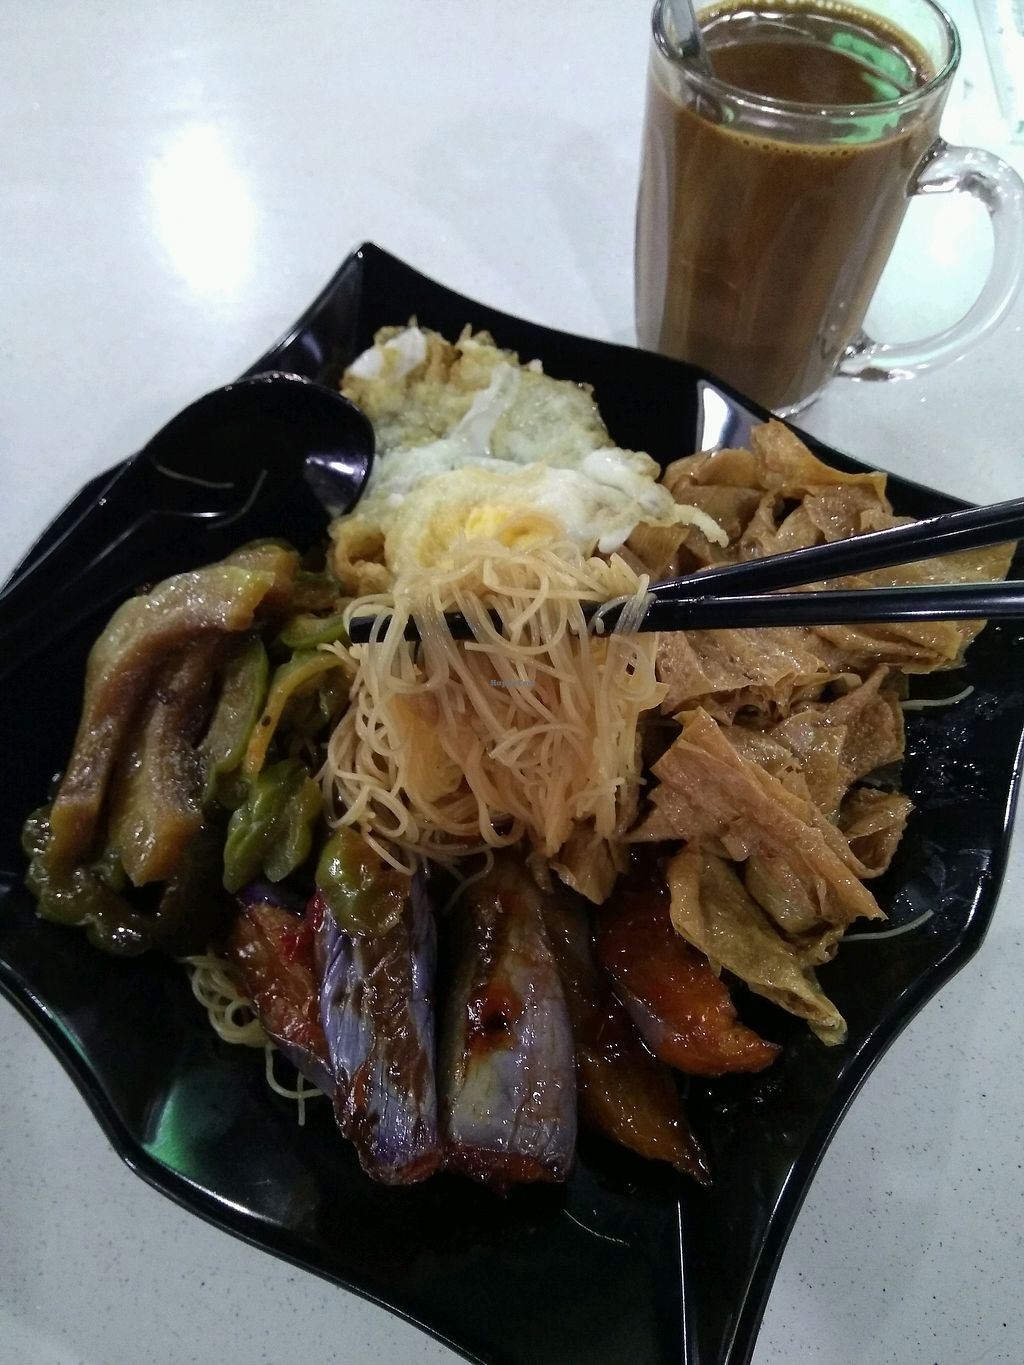 """Photo of Xian Yuan Vegetarian  by <a href=""""/members/profile/AdelOng"""">AdelOng</a> <br/>$3.30 ~ 4 items with mee hoon <br/> April 13, 2018  - <a href='/contact/abuse/image/117607/385429'>Report</a>"""